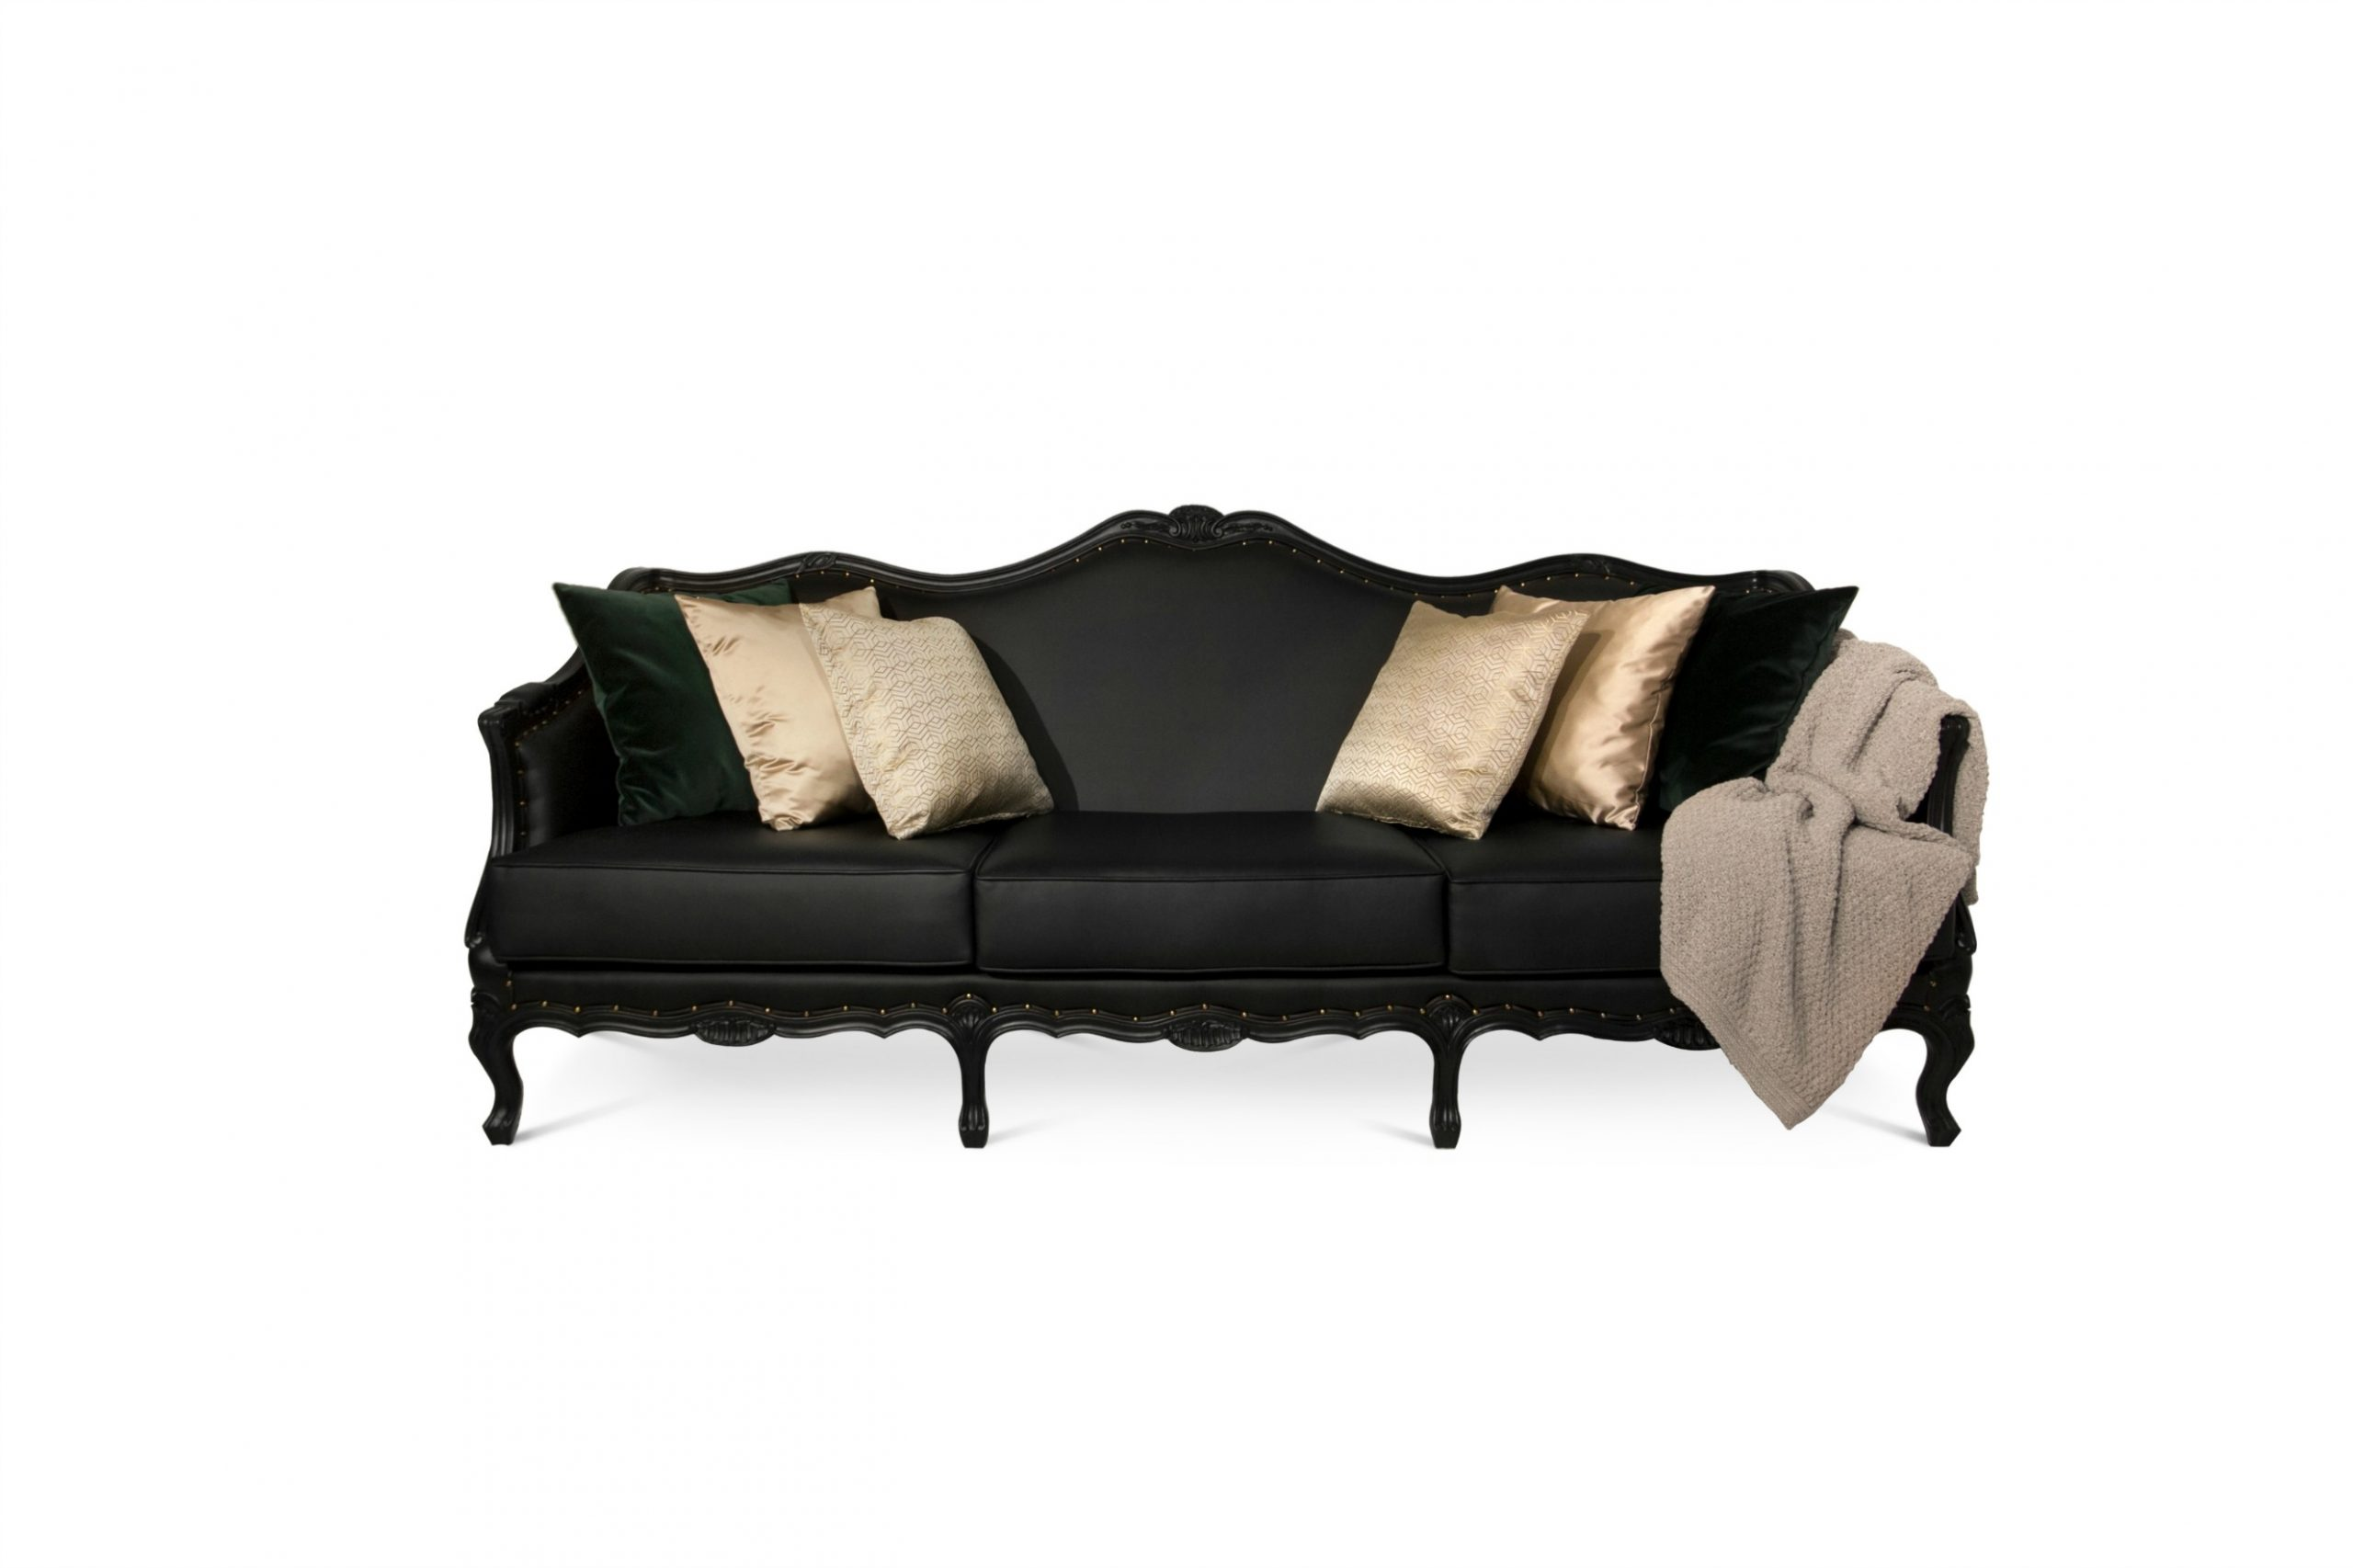 Leather Sofas - How This Classic Piece Can Also Be A Modern Addition leather sofas Leather Sofas – How This Classic Piece Can Also Be A Modern Addition ottawa sofa 1 HR scaled